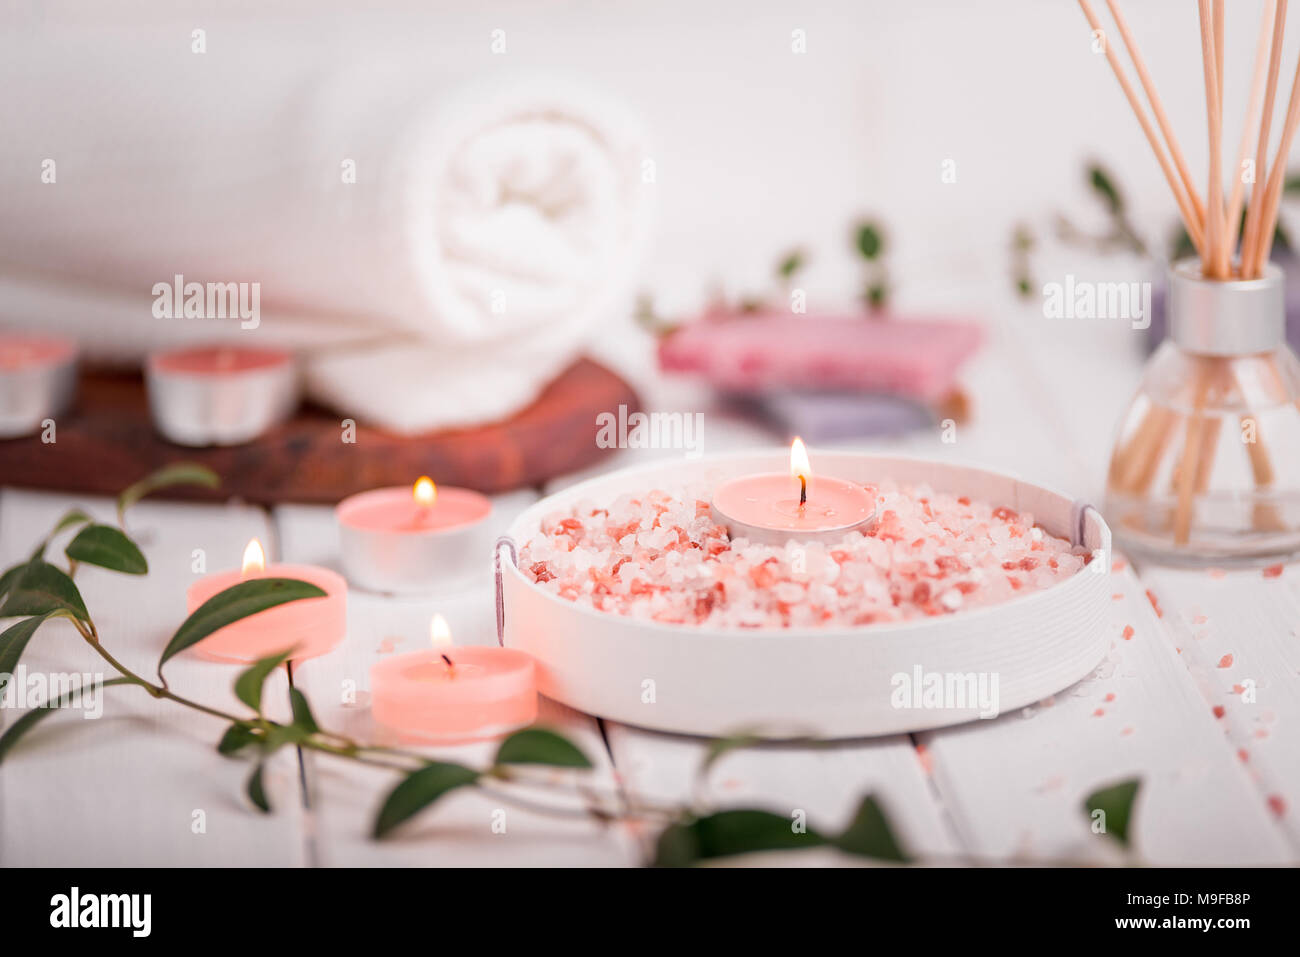 Peach Pink Cream Stock Photos & Peach Pink Cream Stock Images - Alamy